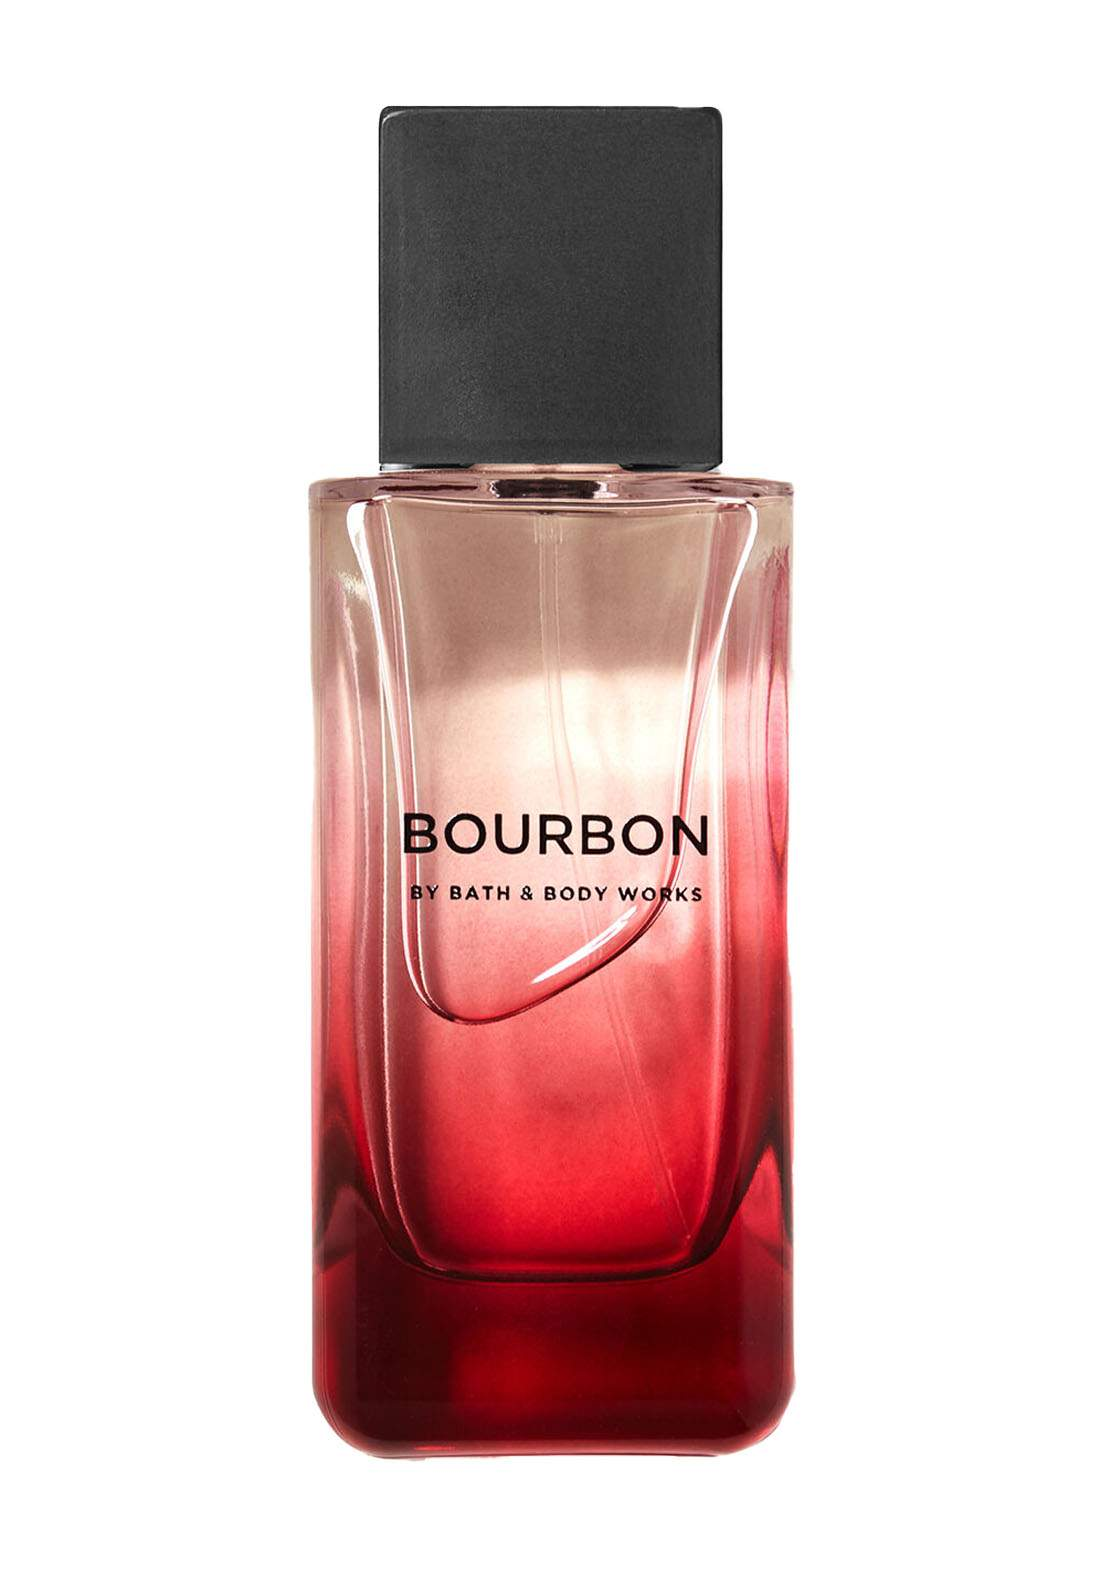 Bath And Body Works Cologne Bourbon Cologne For Womens 100ml عطر نسائي